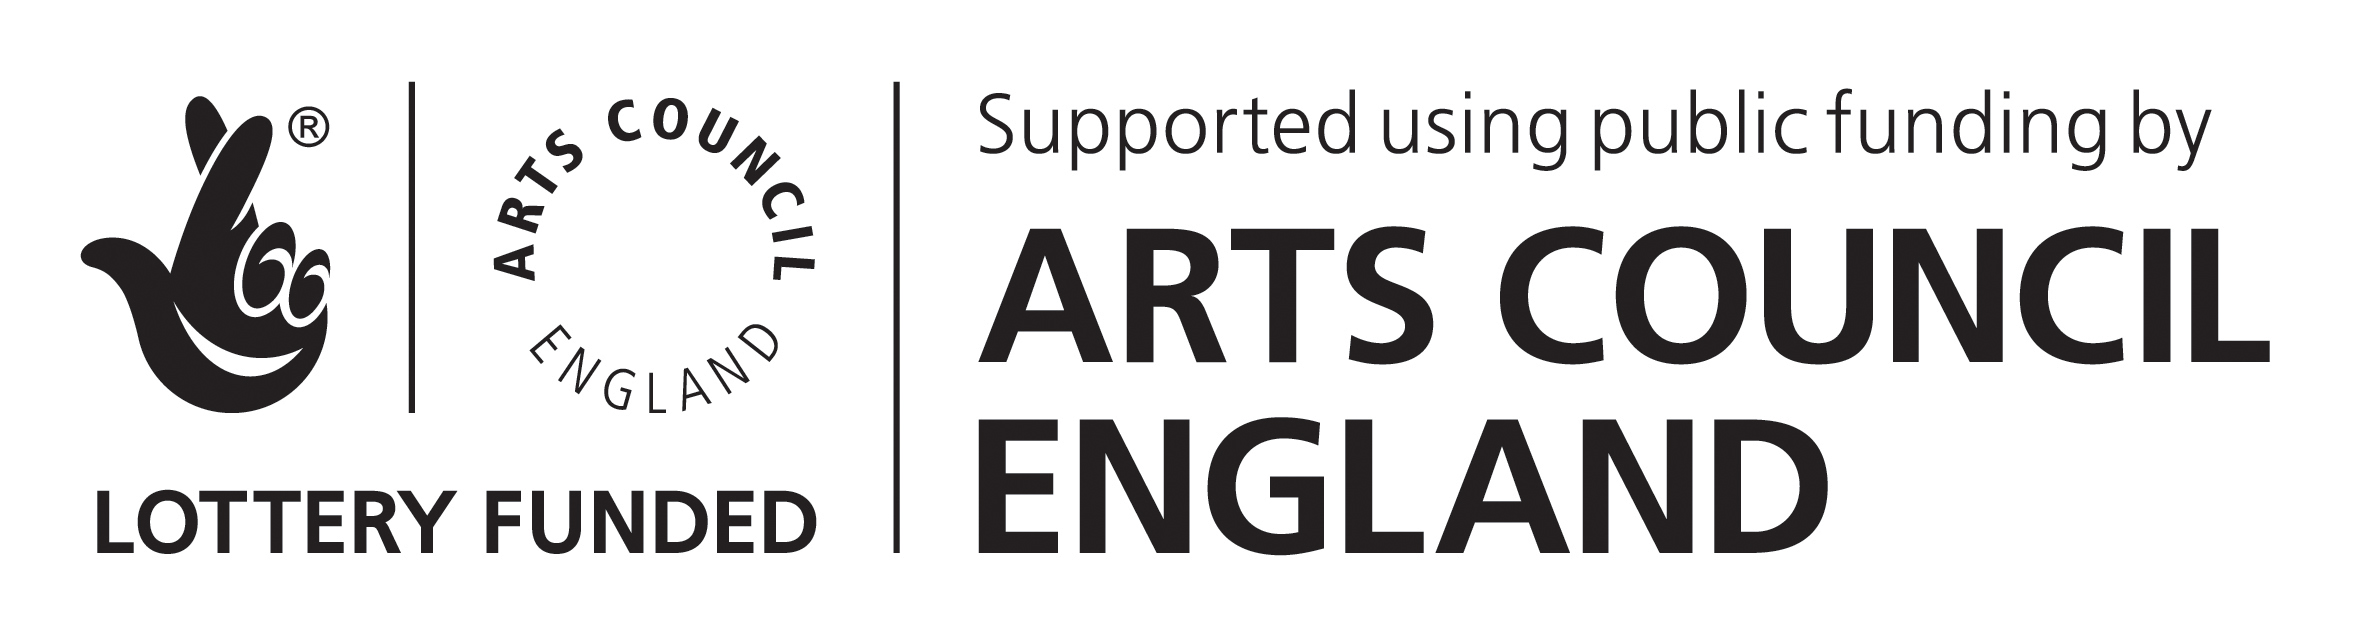 Resting Place is supported using public funding by the National Lottery through Arts Council England.